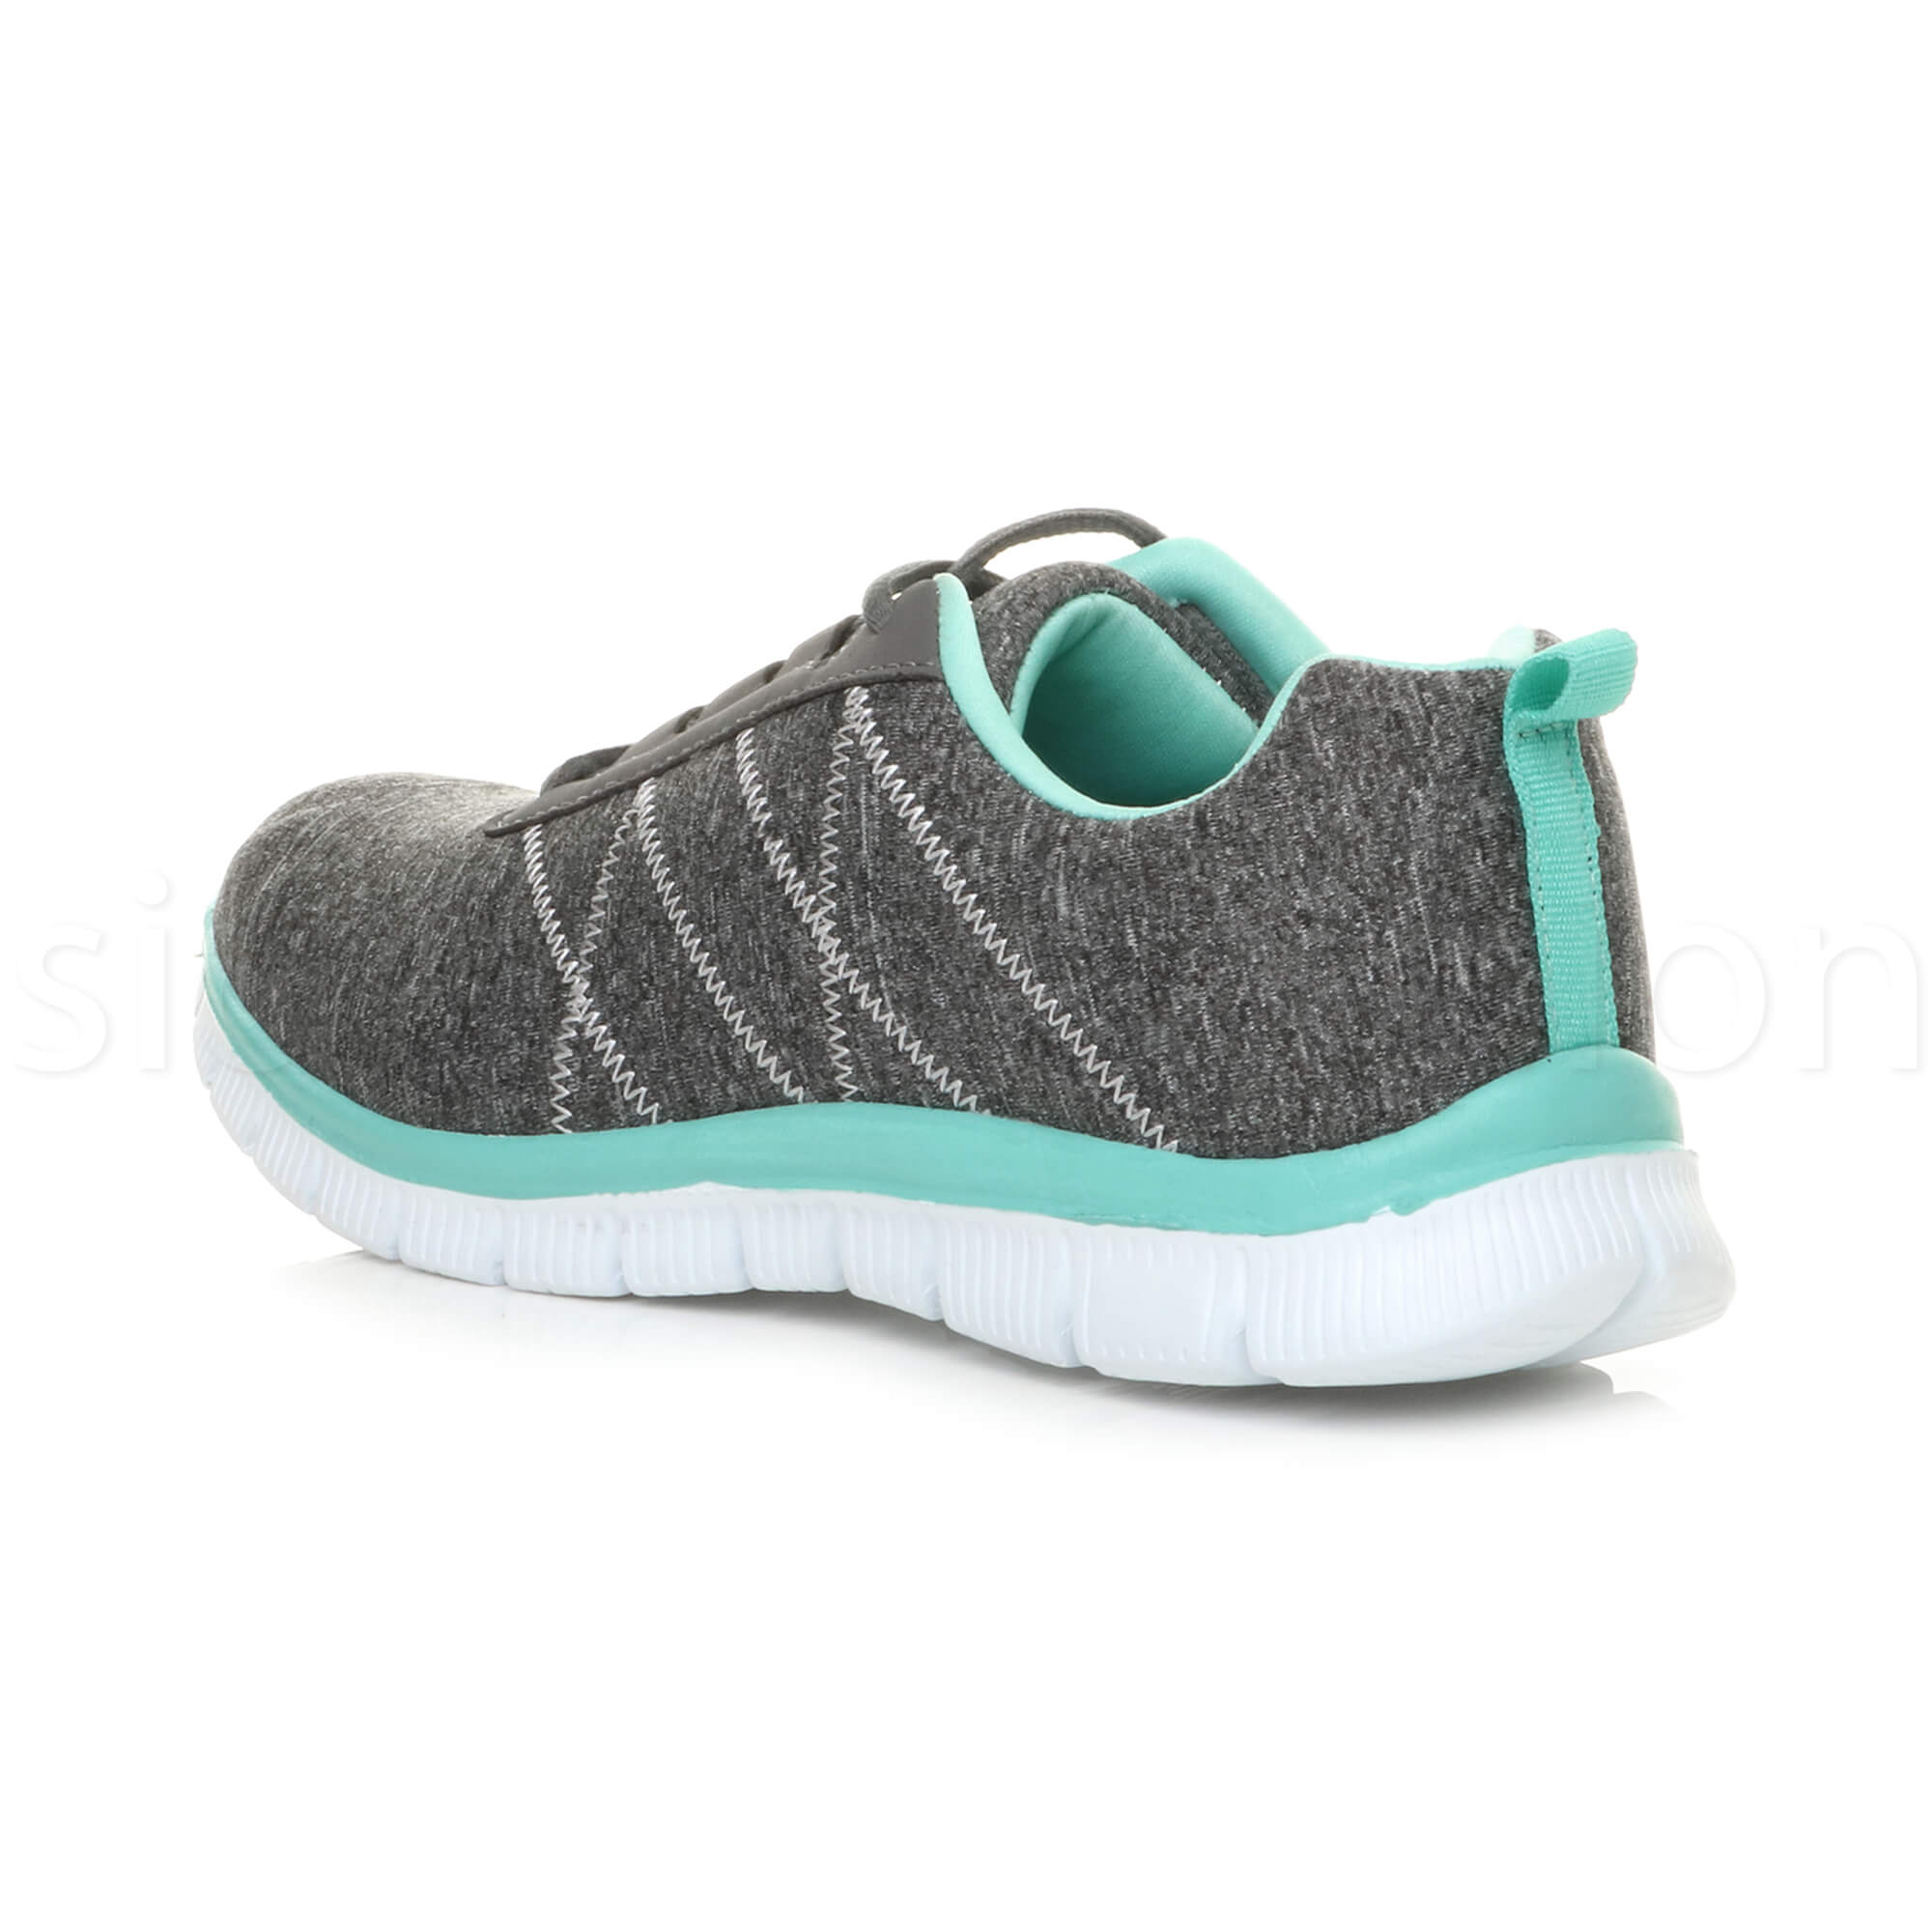 Womens-ladies-comfort-memory-foam-lace-up-trainers-activewear-sneakers-gym-shoes thumbnail 47